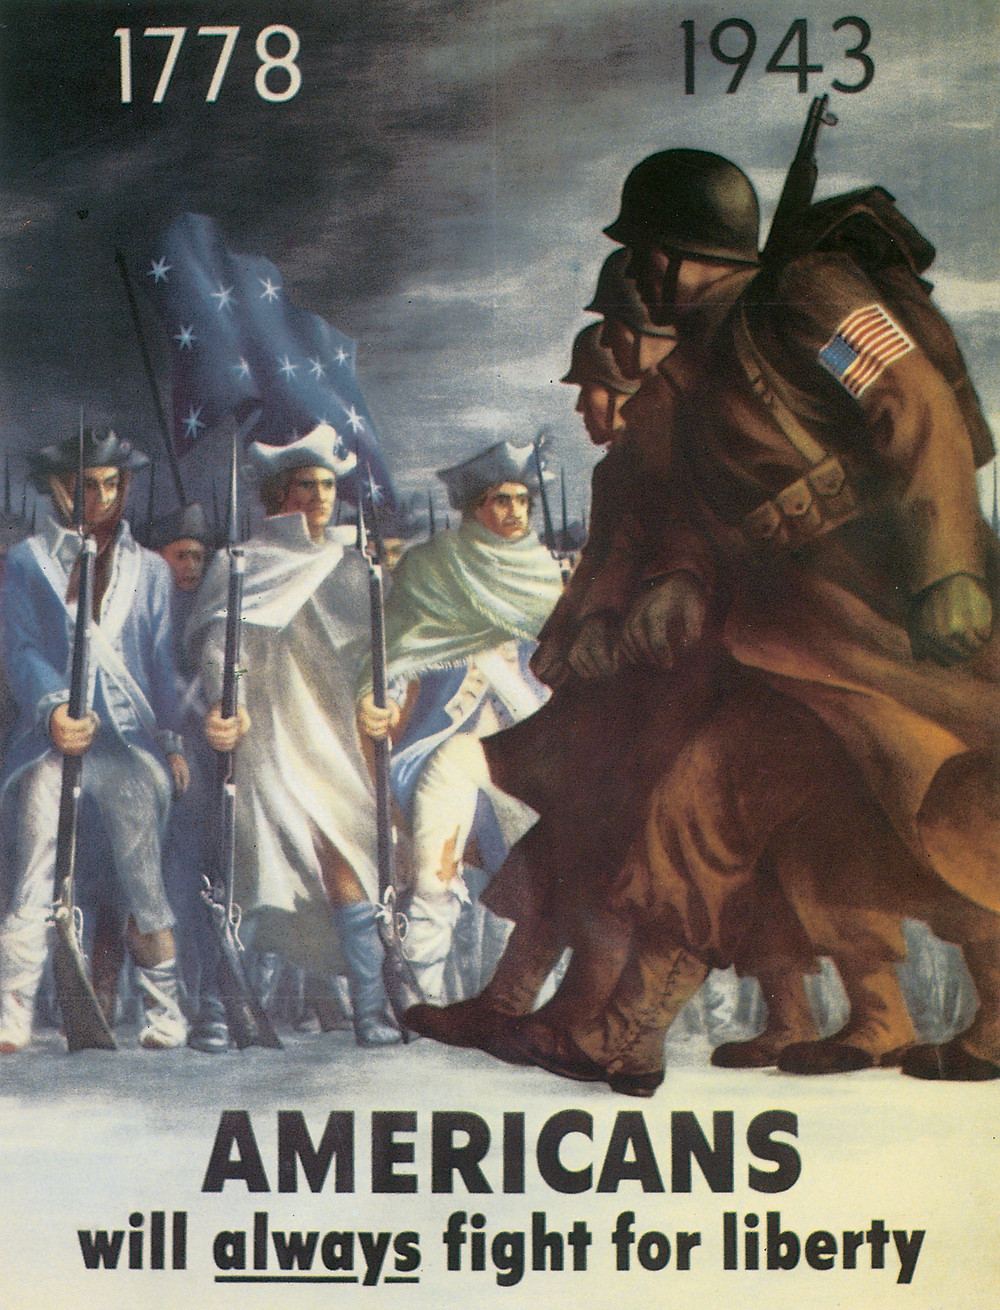 WWII poster: Americans will always fight for liberty